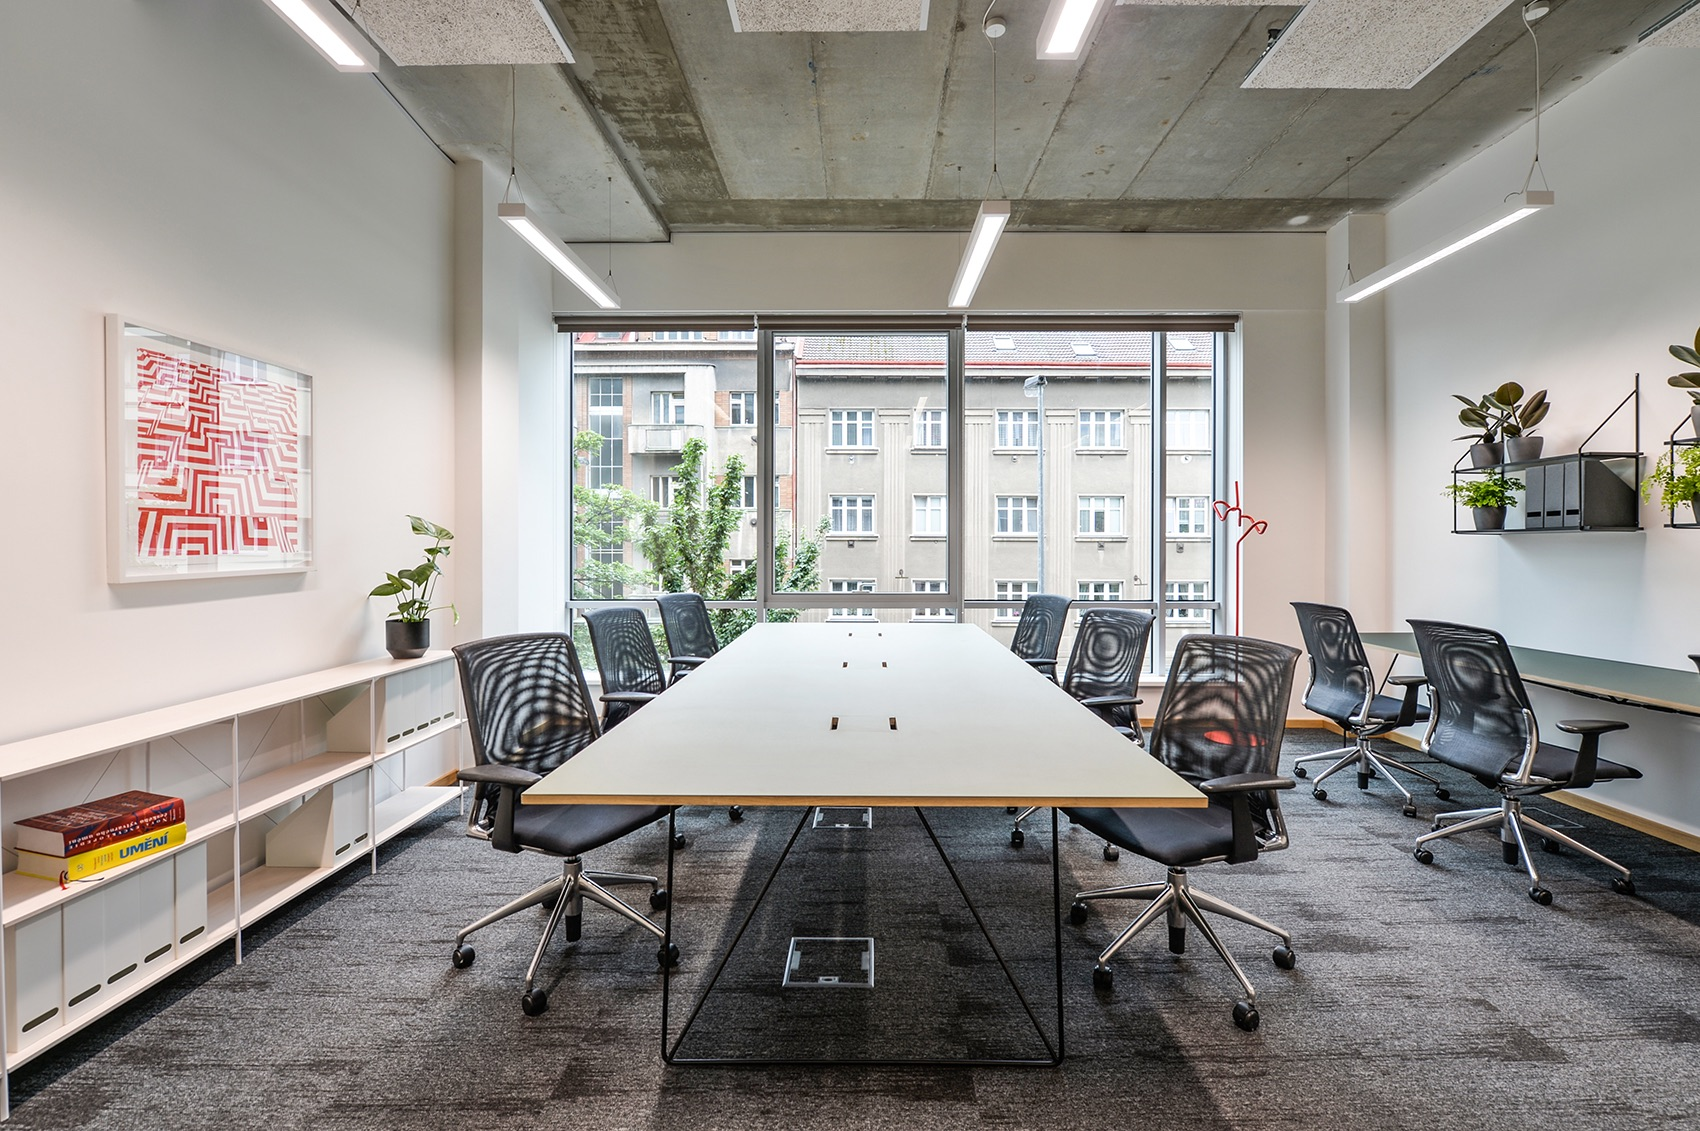 myhive-offices-prague-6